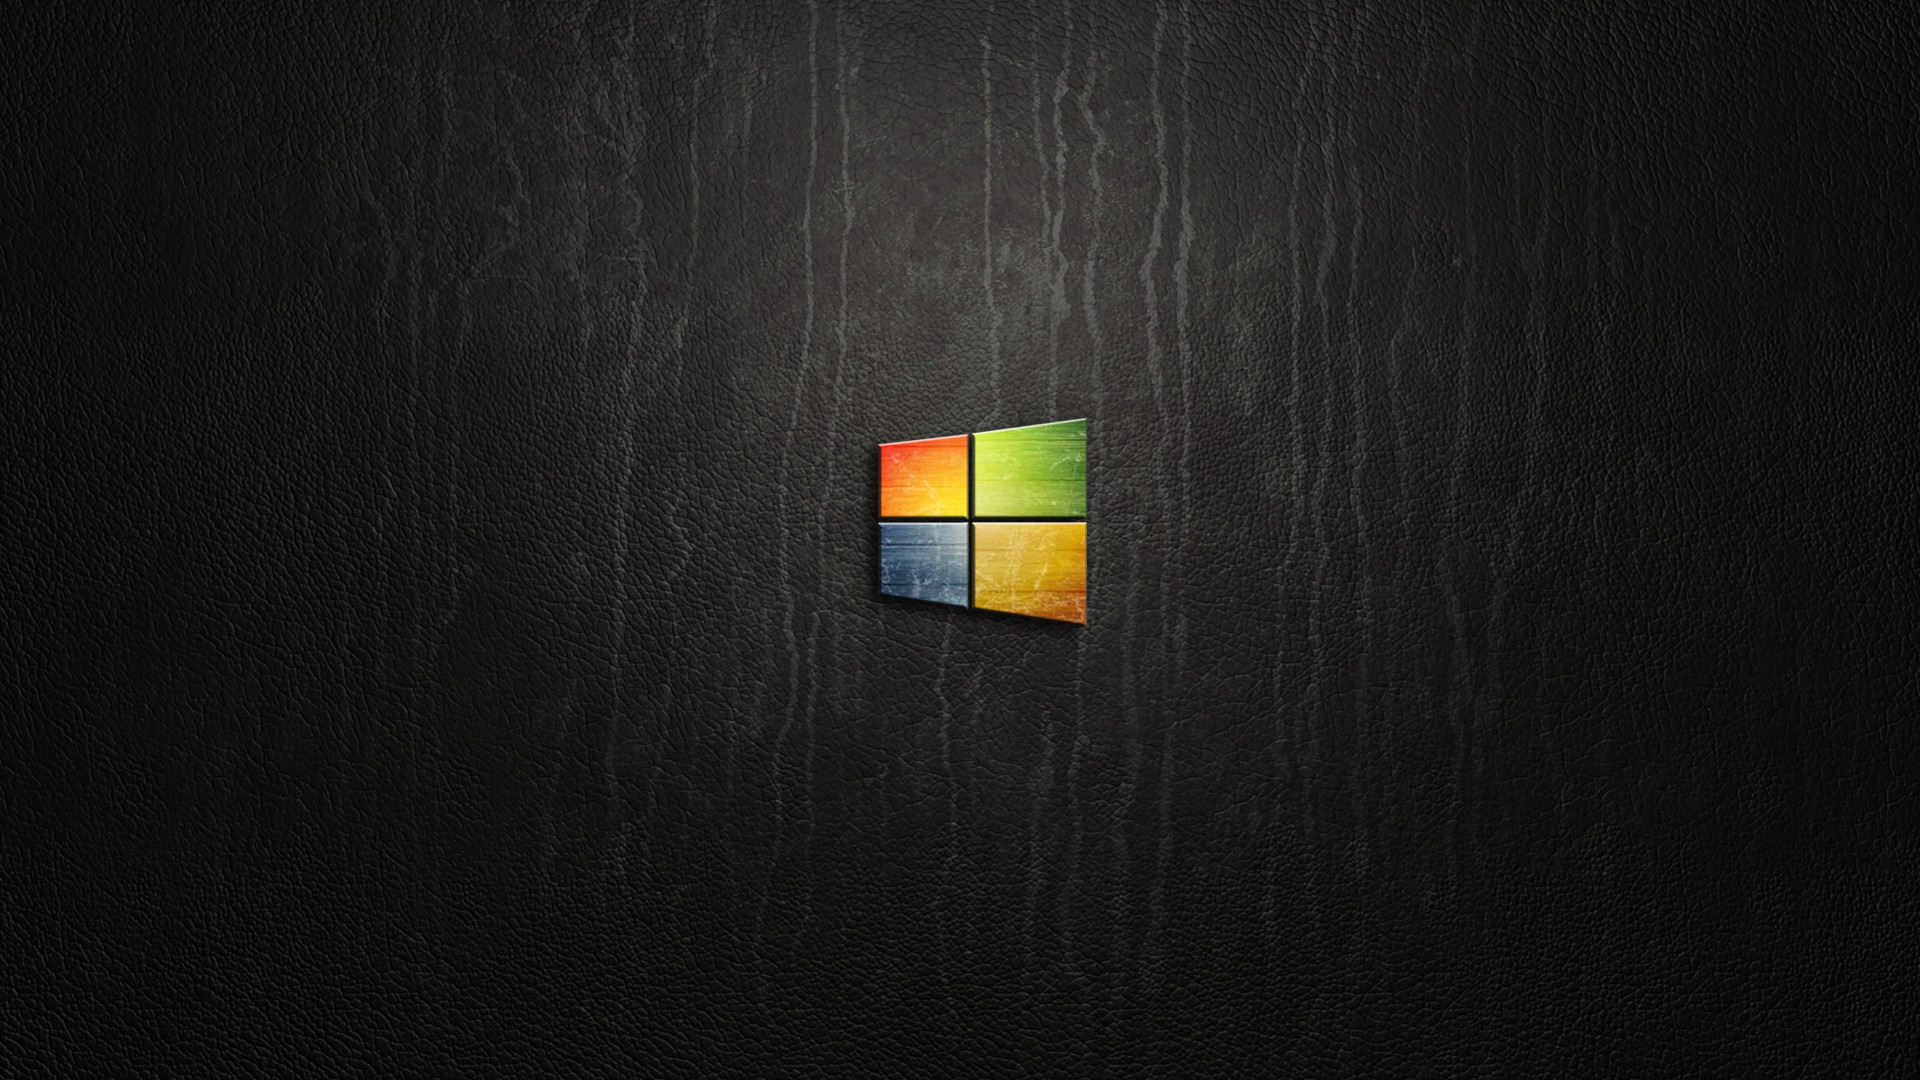 win 10 wallpapers